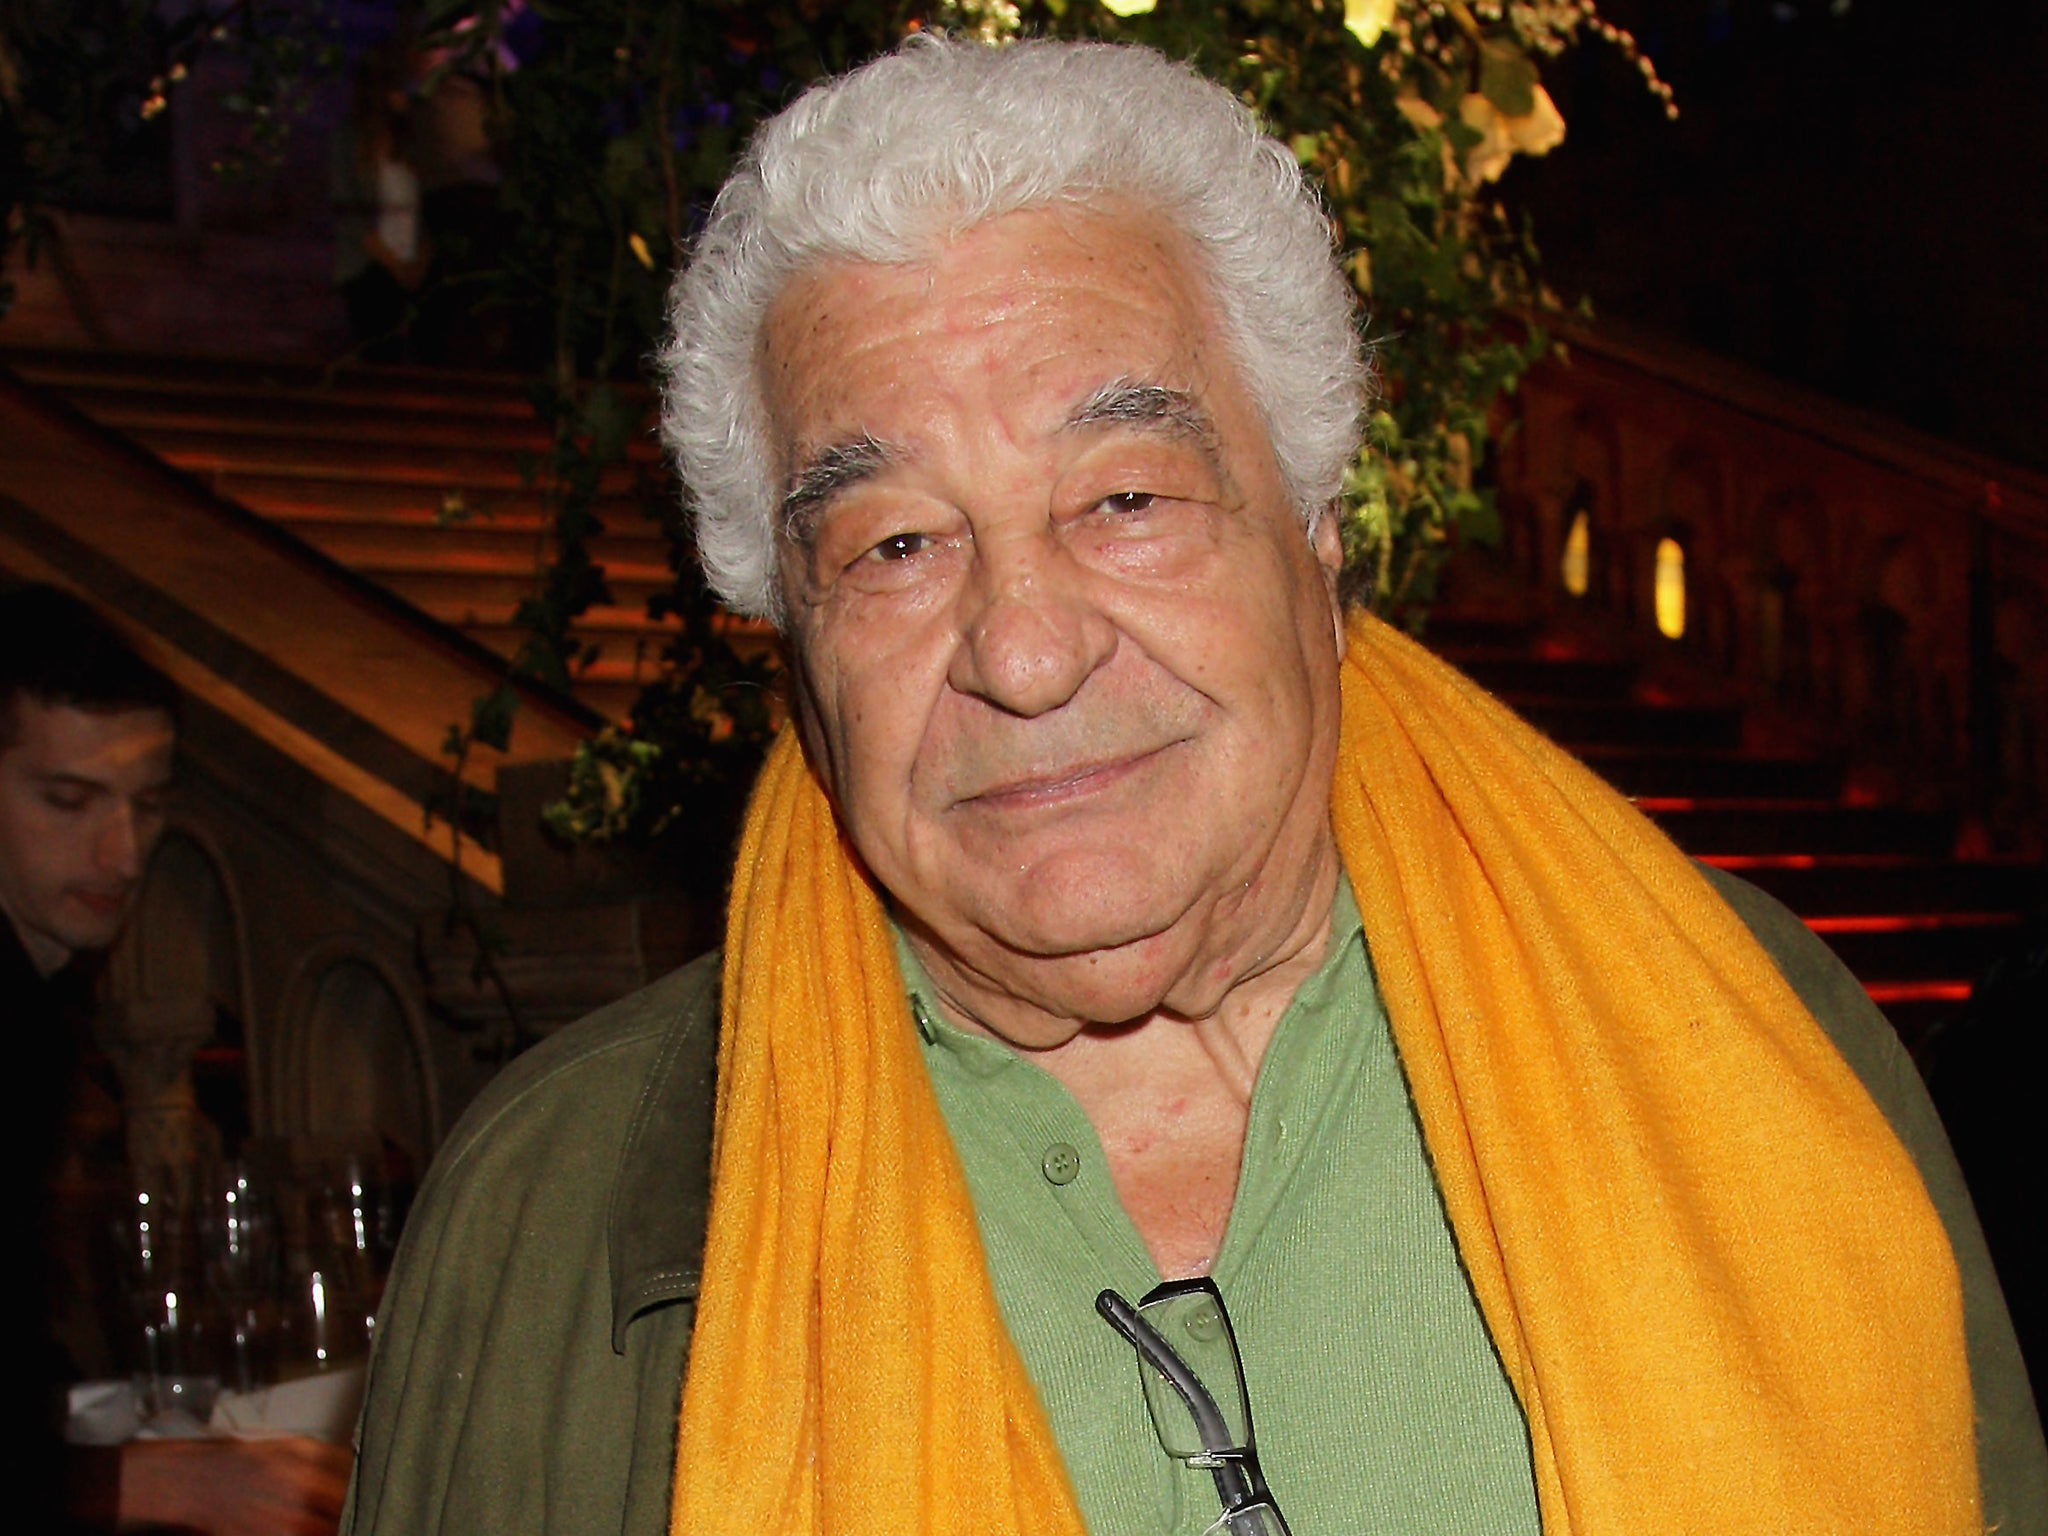 Spaghetti bolognese has been ruined by the British, says Antonio Carluccio